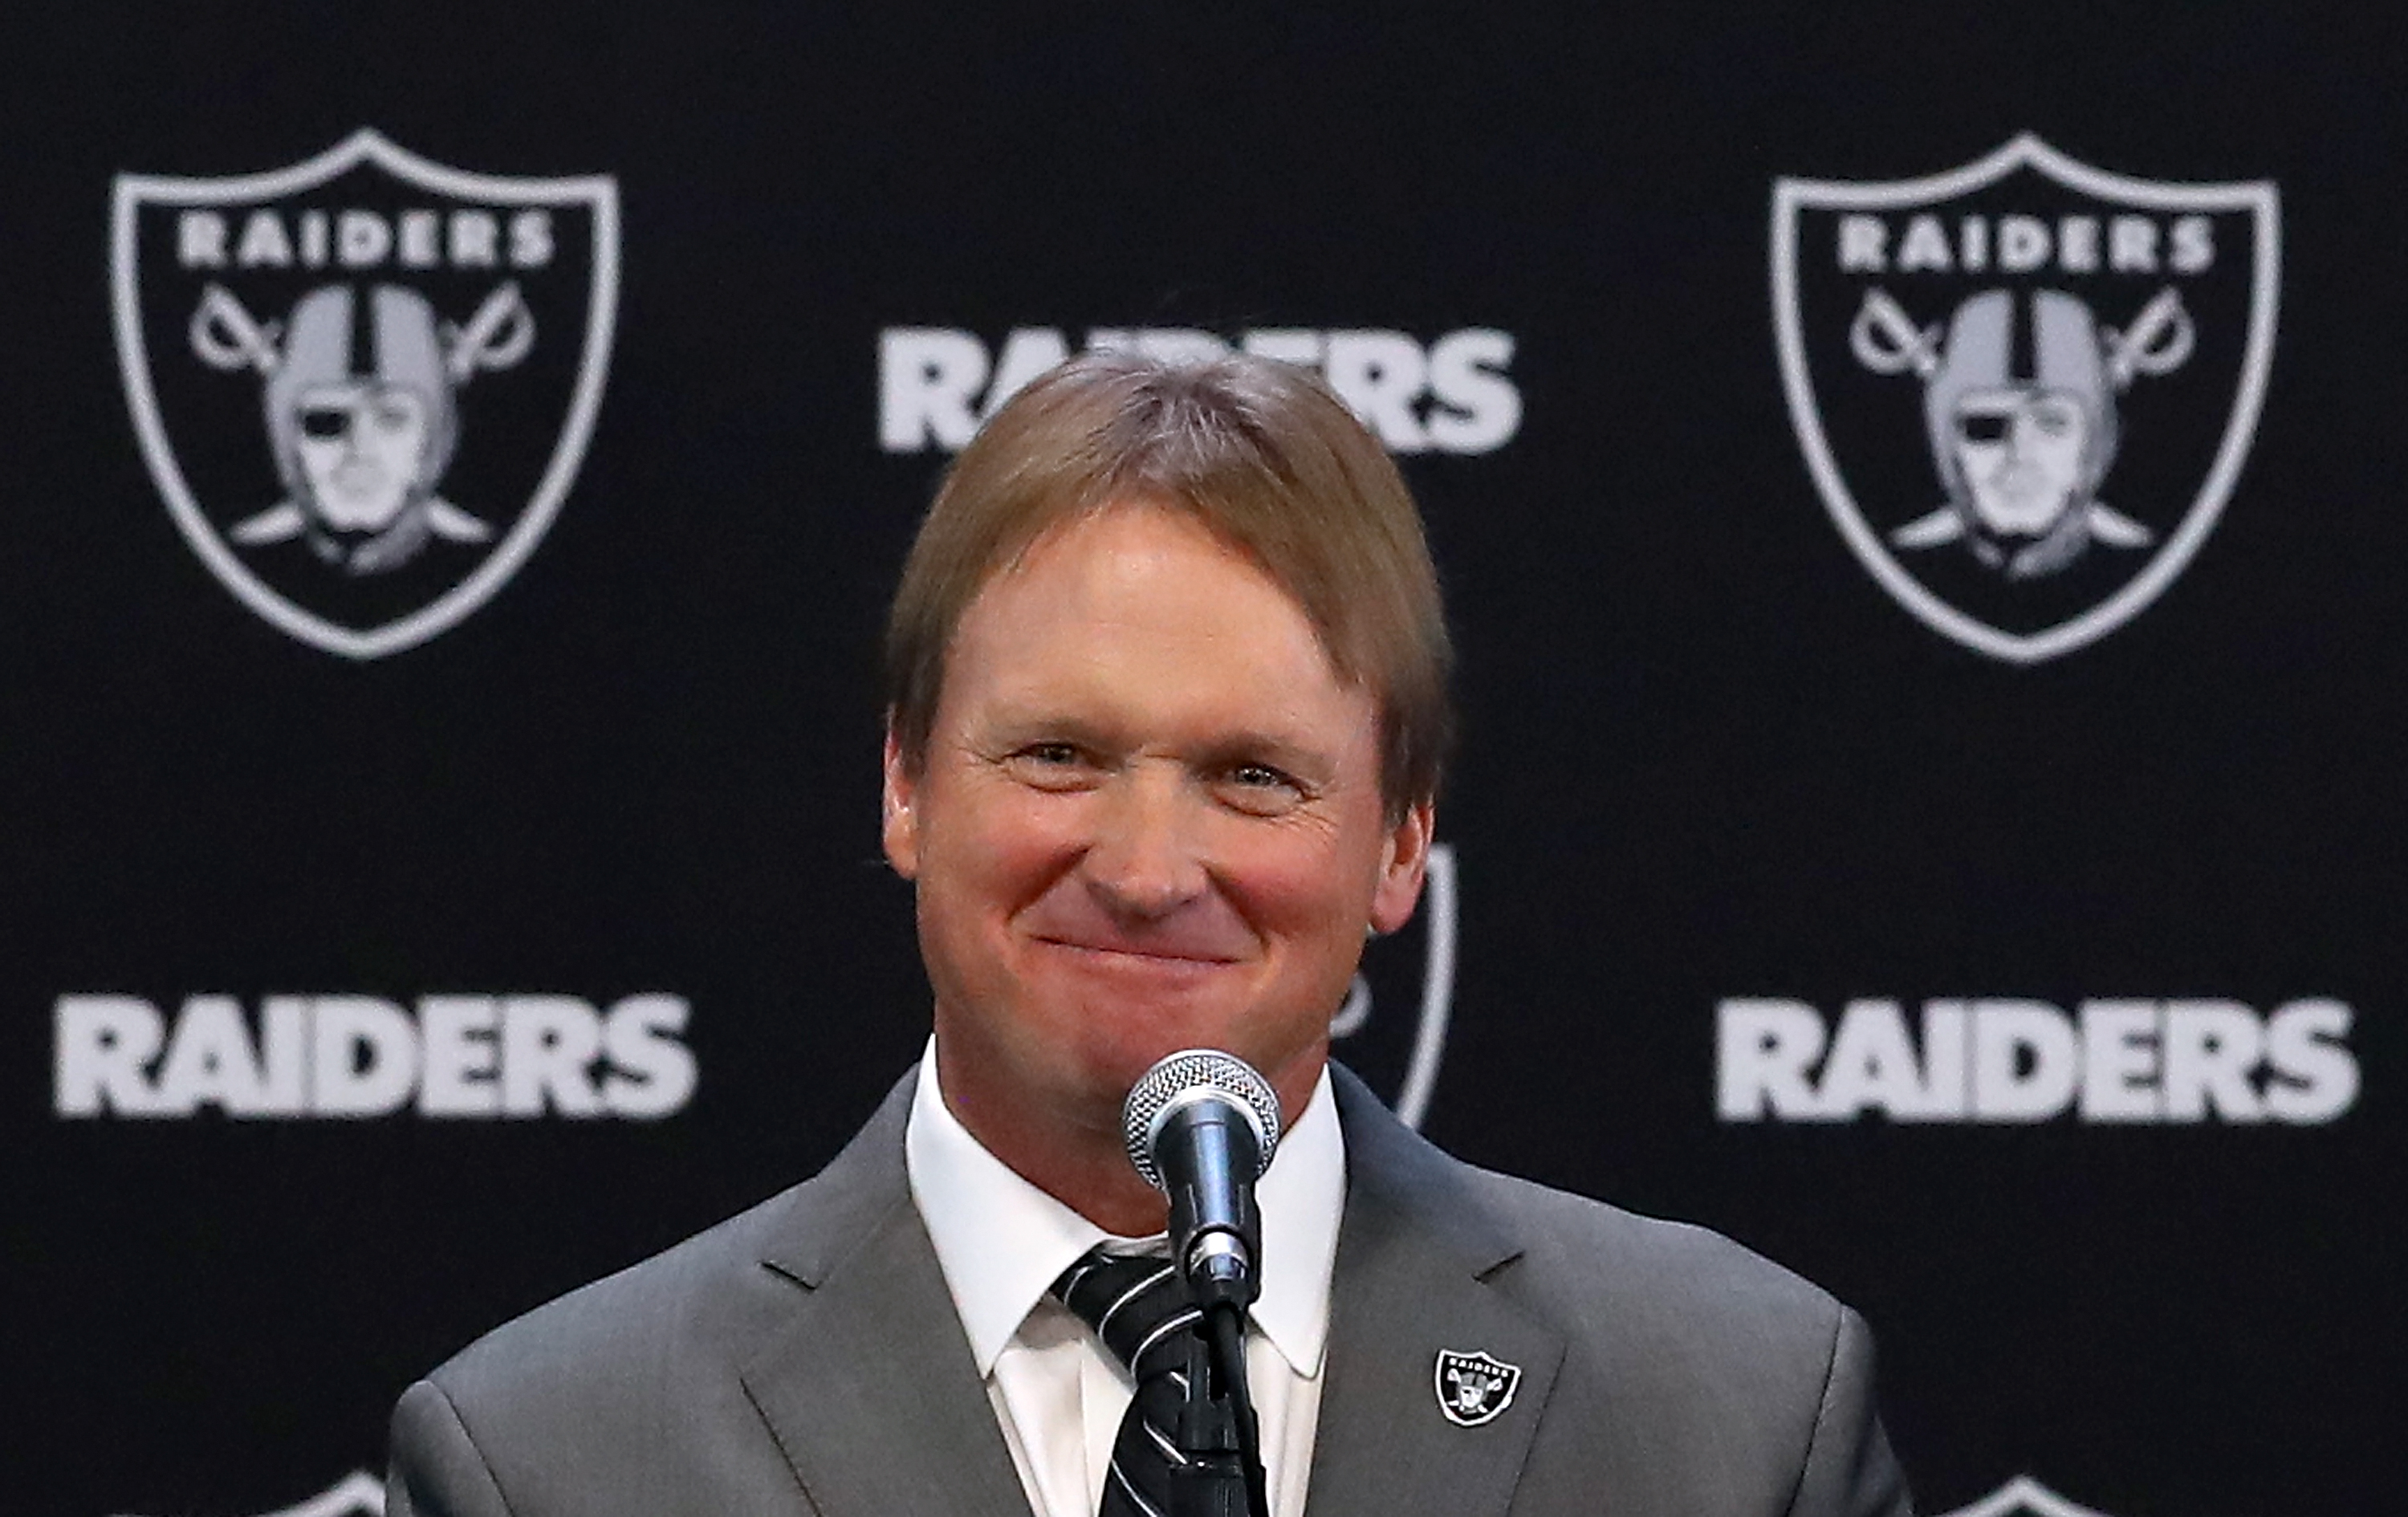 Raiders Officially Introduce Jon Gruden as Team's New Head Coach